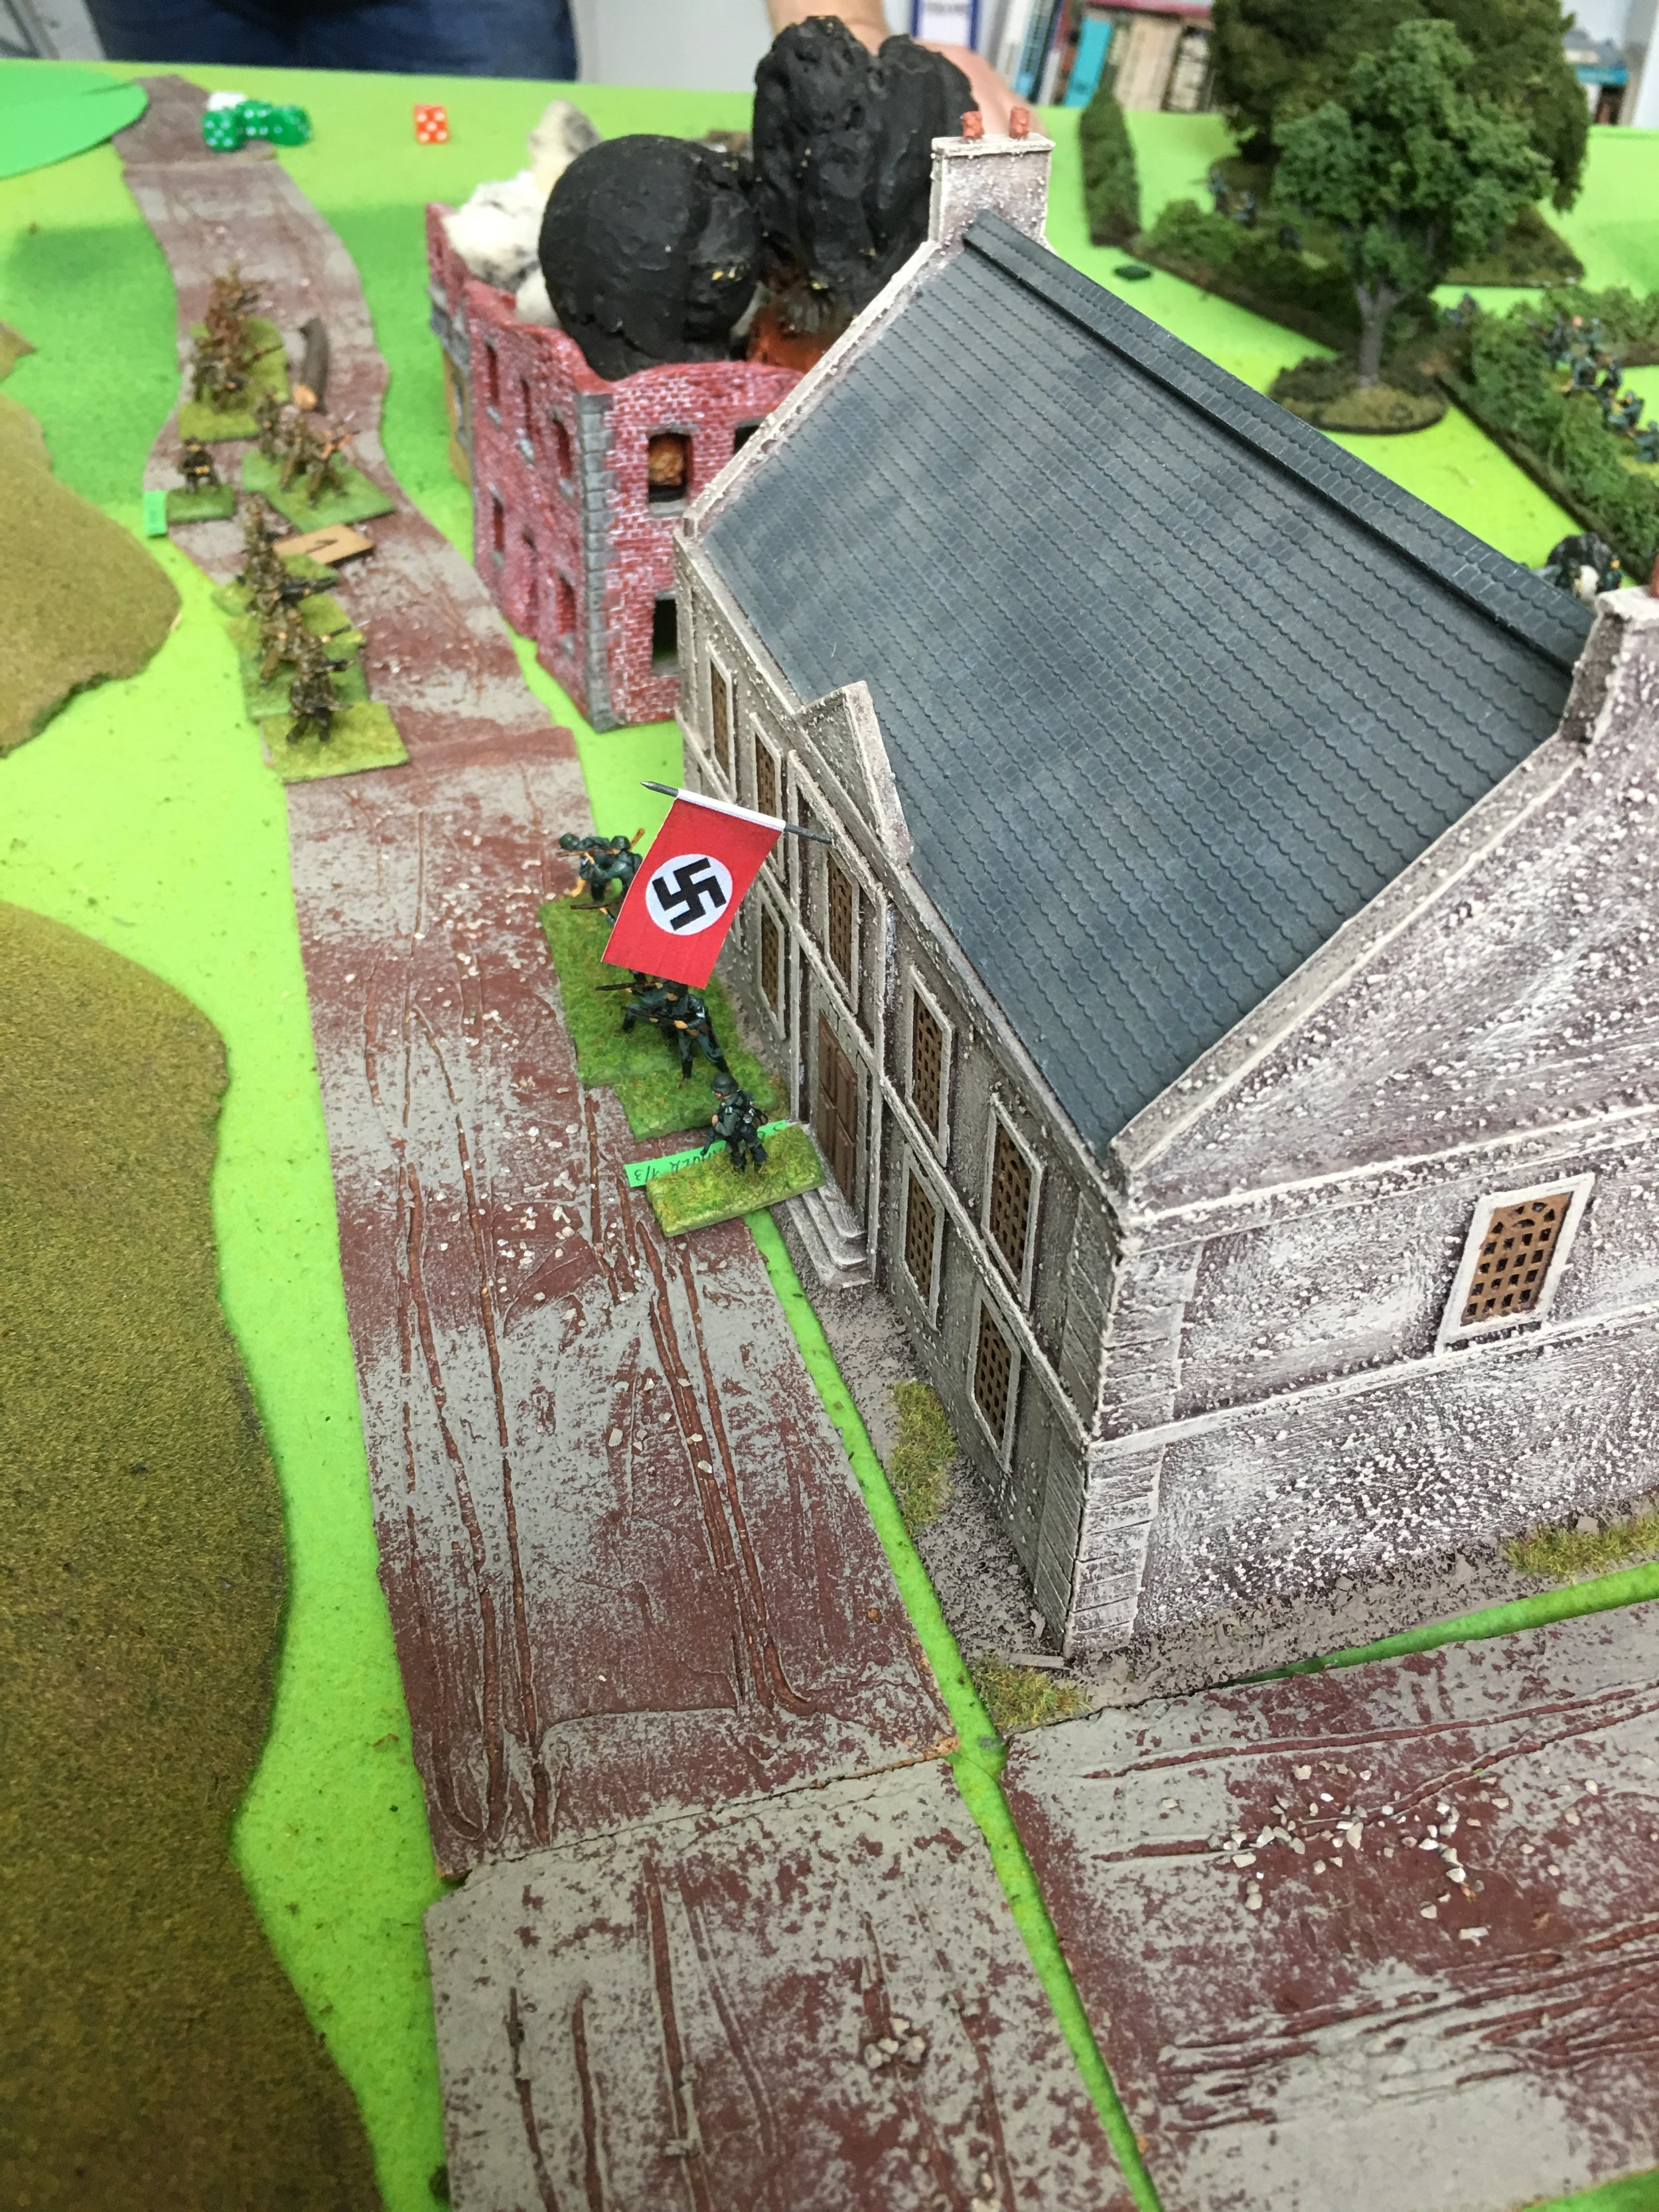 The swastika flies over Seabrook. The ast British defenders try to escape before being surrounded